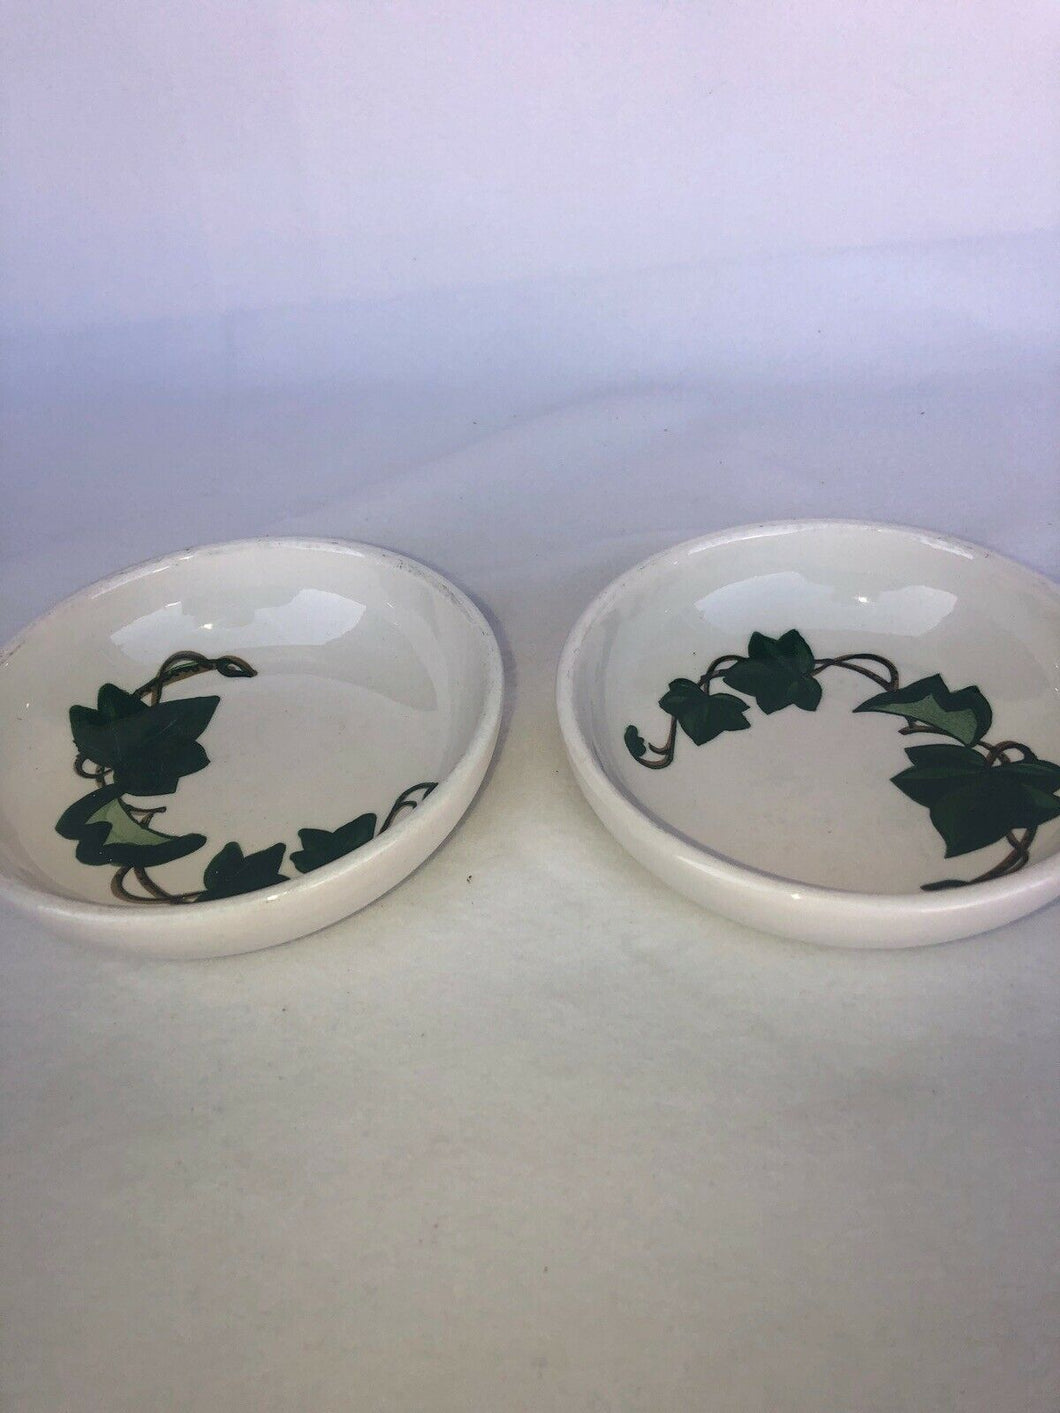 "2 California Ivy Poppy Trail by Metlox Small Bowles 5.75"" Each Mid Mod Eames Era"